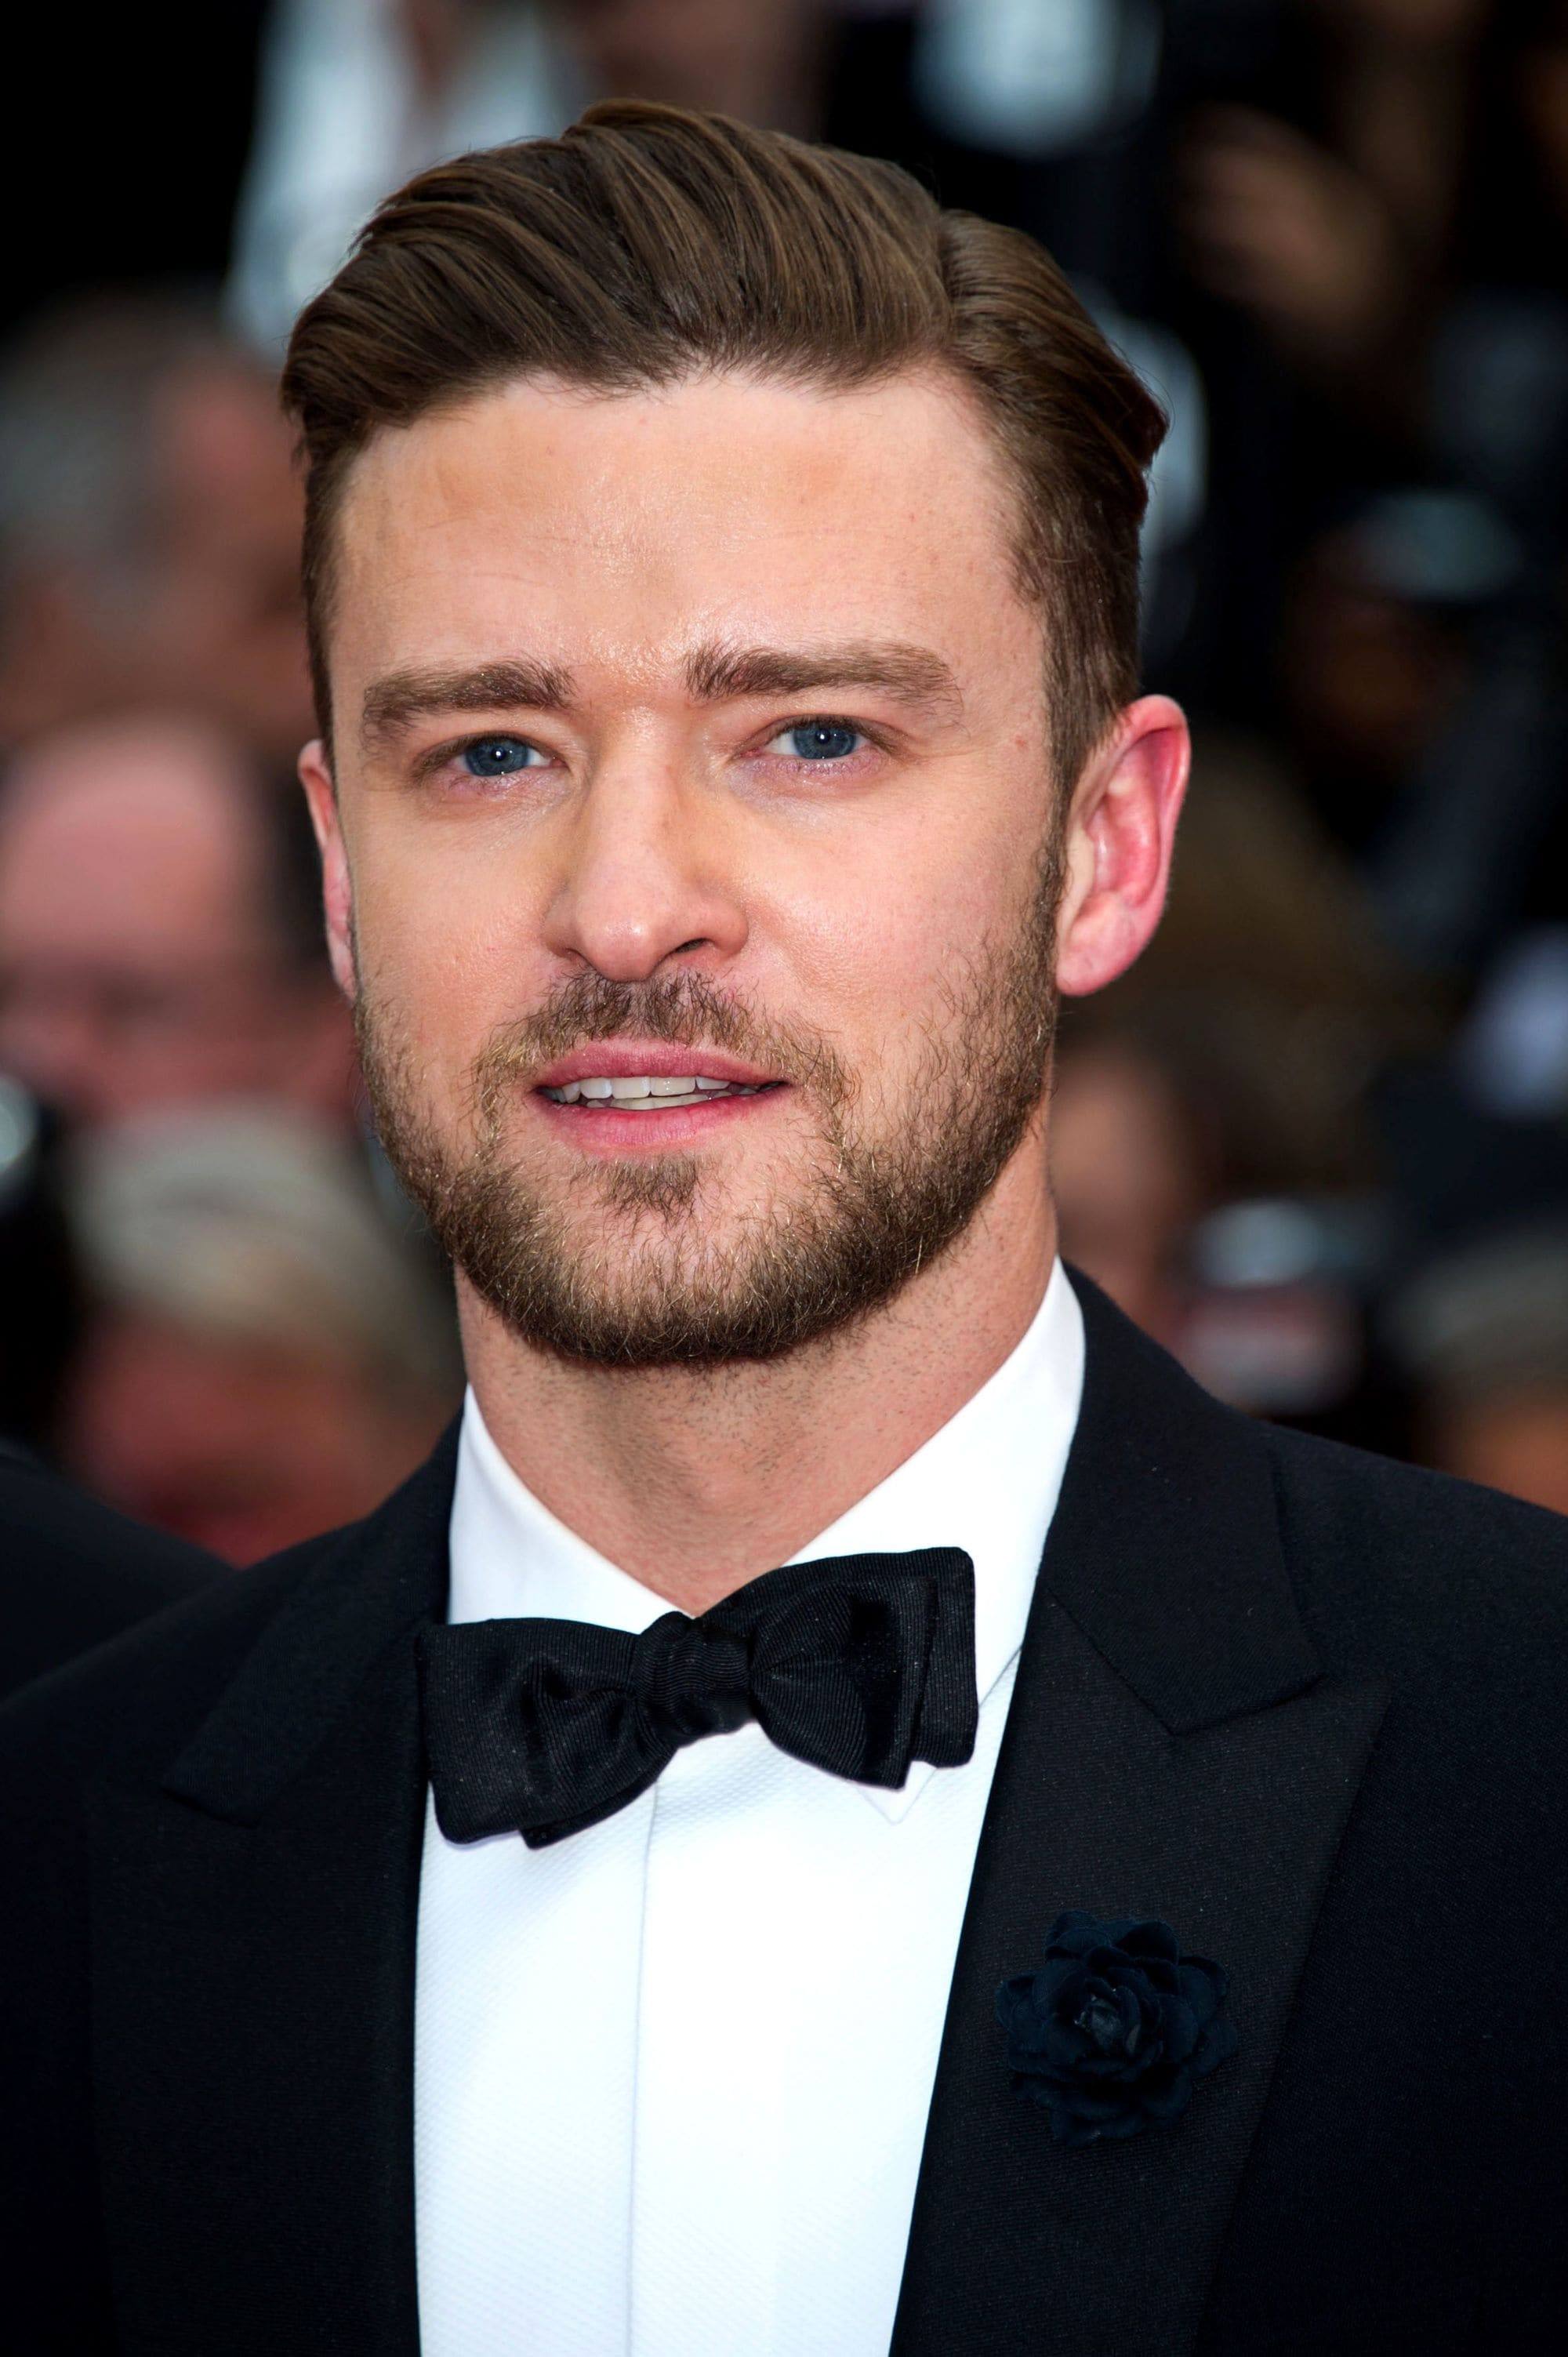 Ivy League haircut: Justin Timberlake with a long swept over Ivy League haircut, wearing a tux